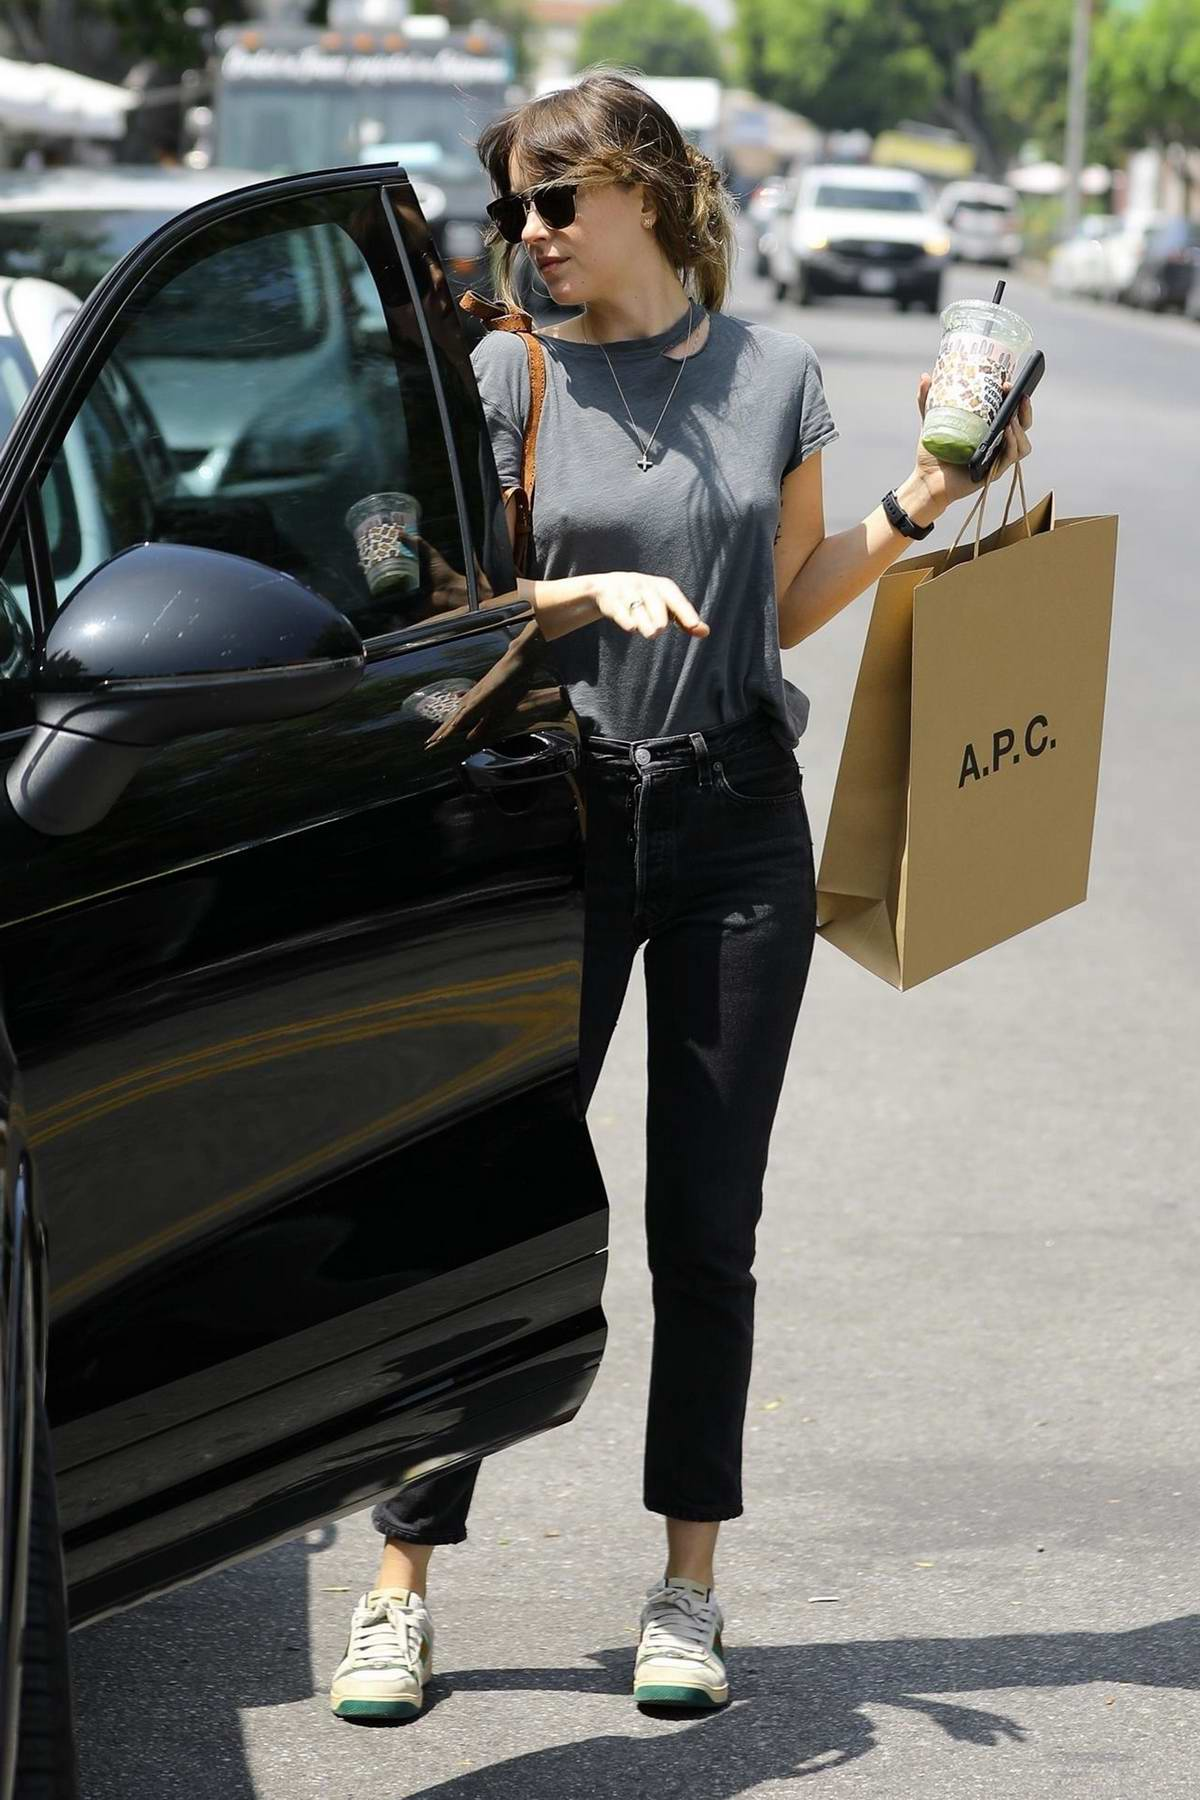 126ab98b9 dakota johnson wears grey top, black jeans and gucci sneakers during a  shopping trip to apc in los angeles-260419_8